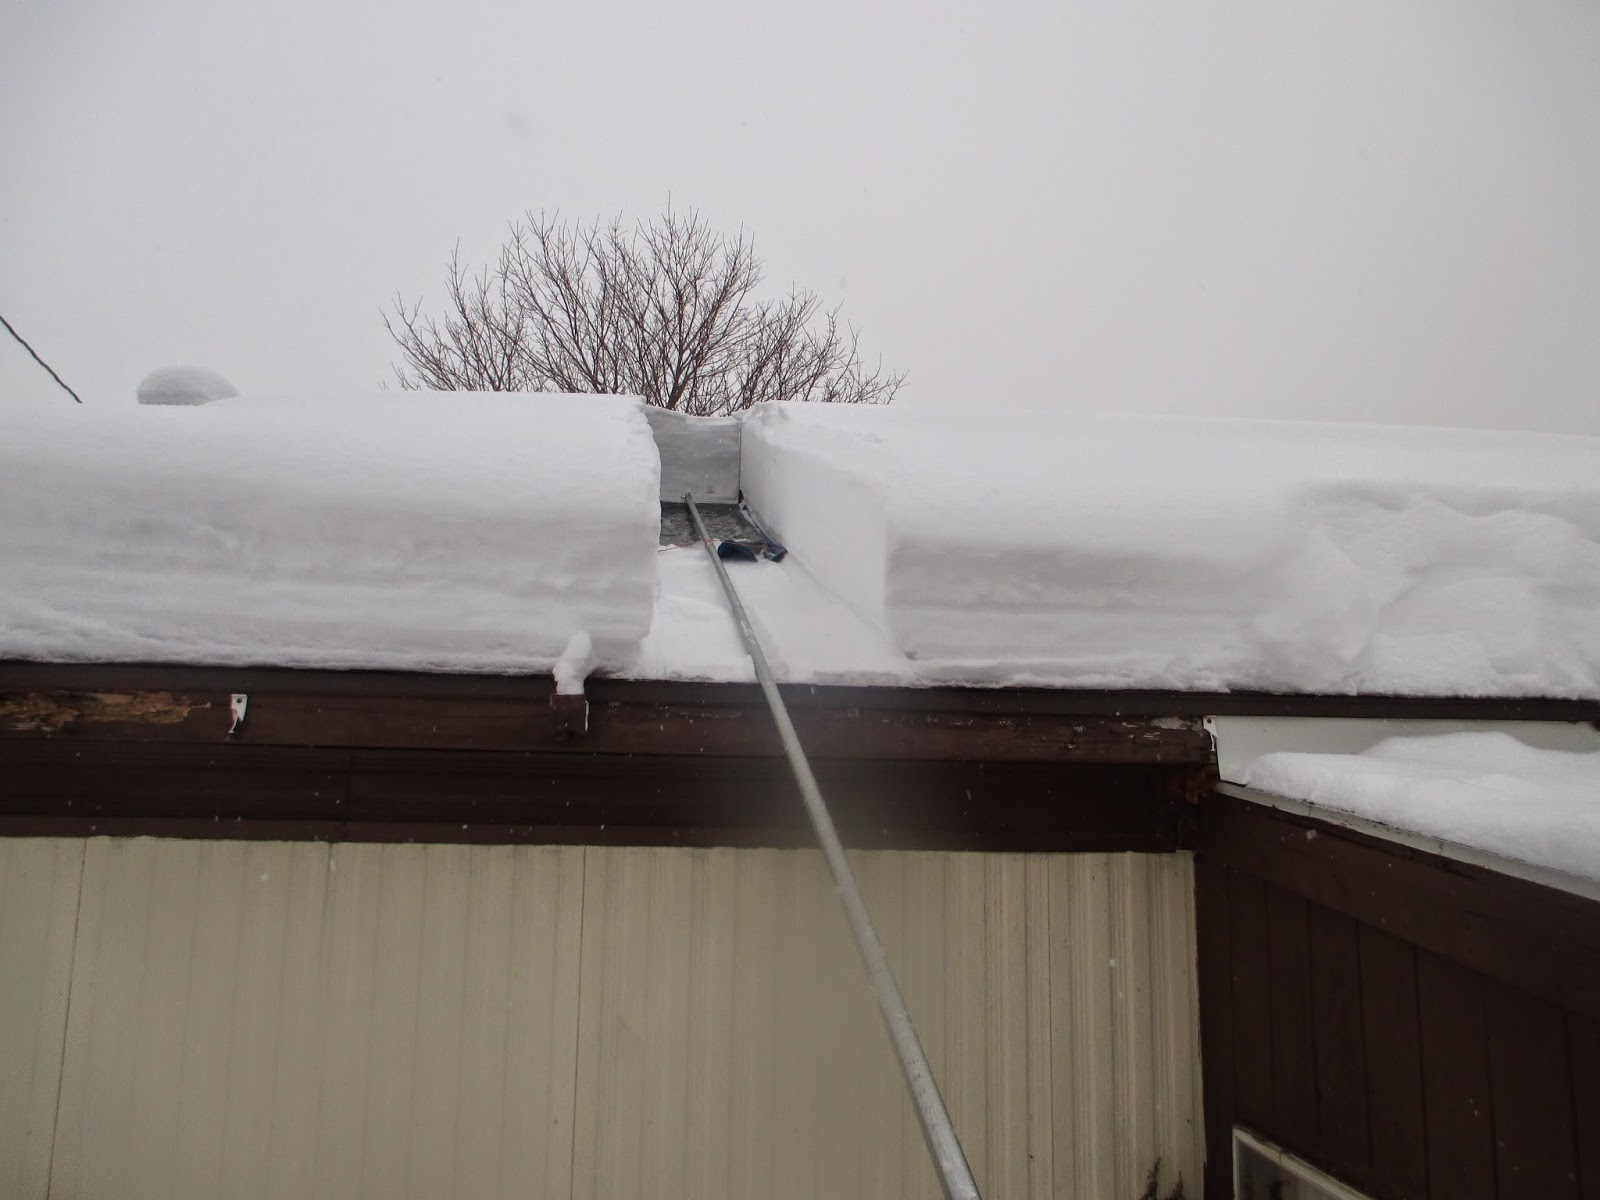 This First Push Up The Roof Shows How Nicely The Tool Slices Through And  Releases The Snow.